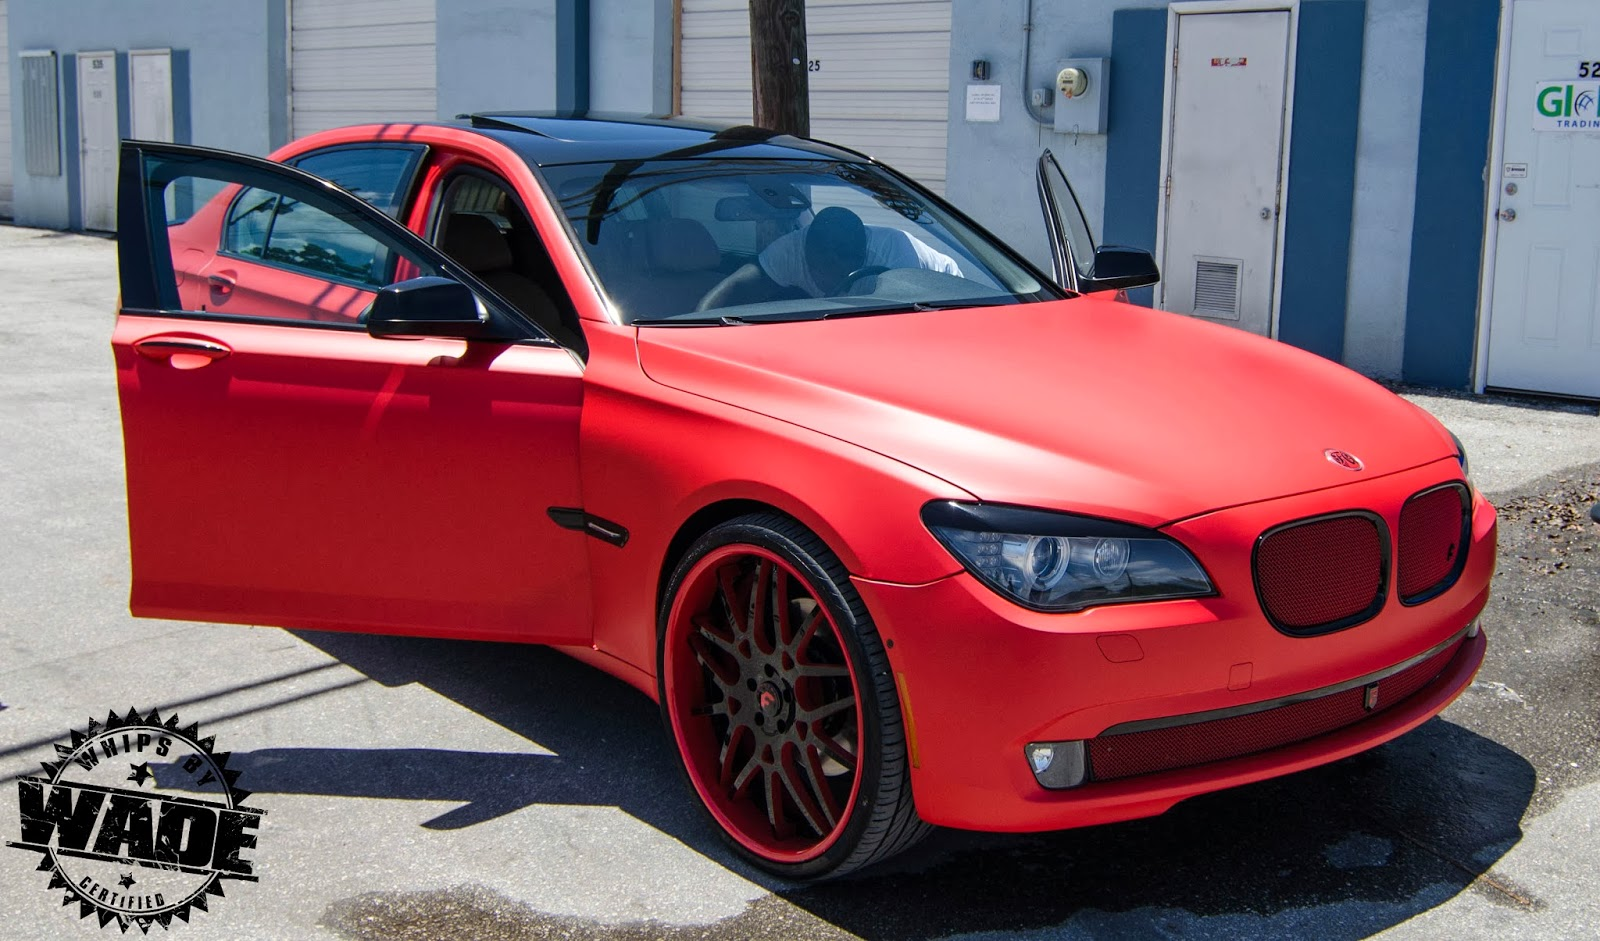 Whips By Wade TaTe Design Matte Red Wrapped BMW 750li On 24 Forgiato Wheels